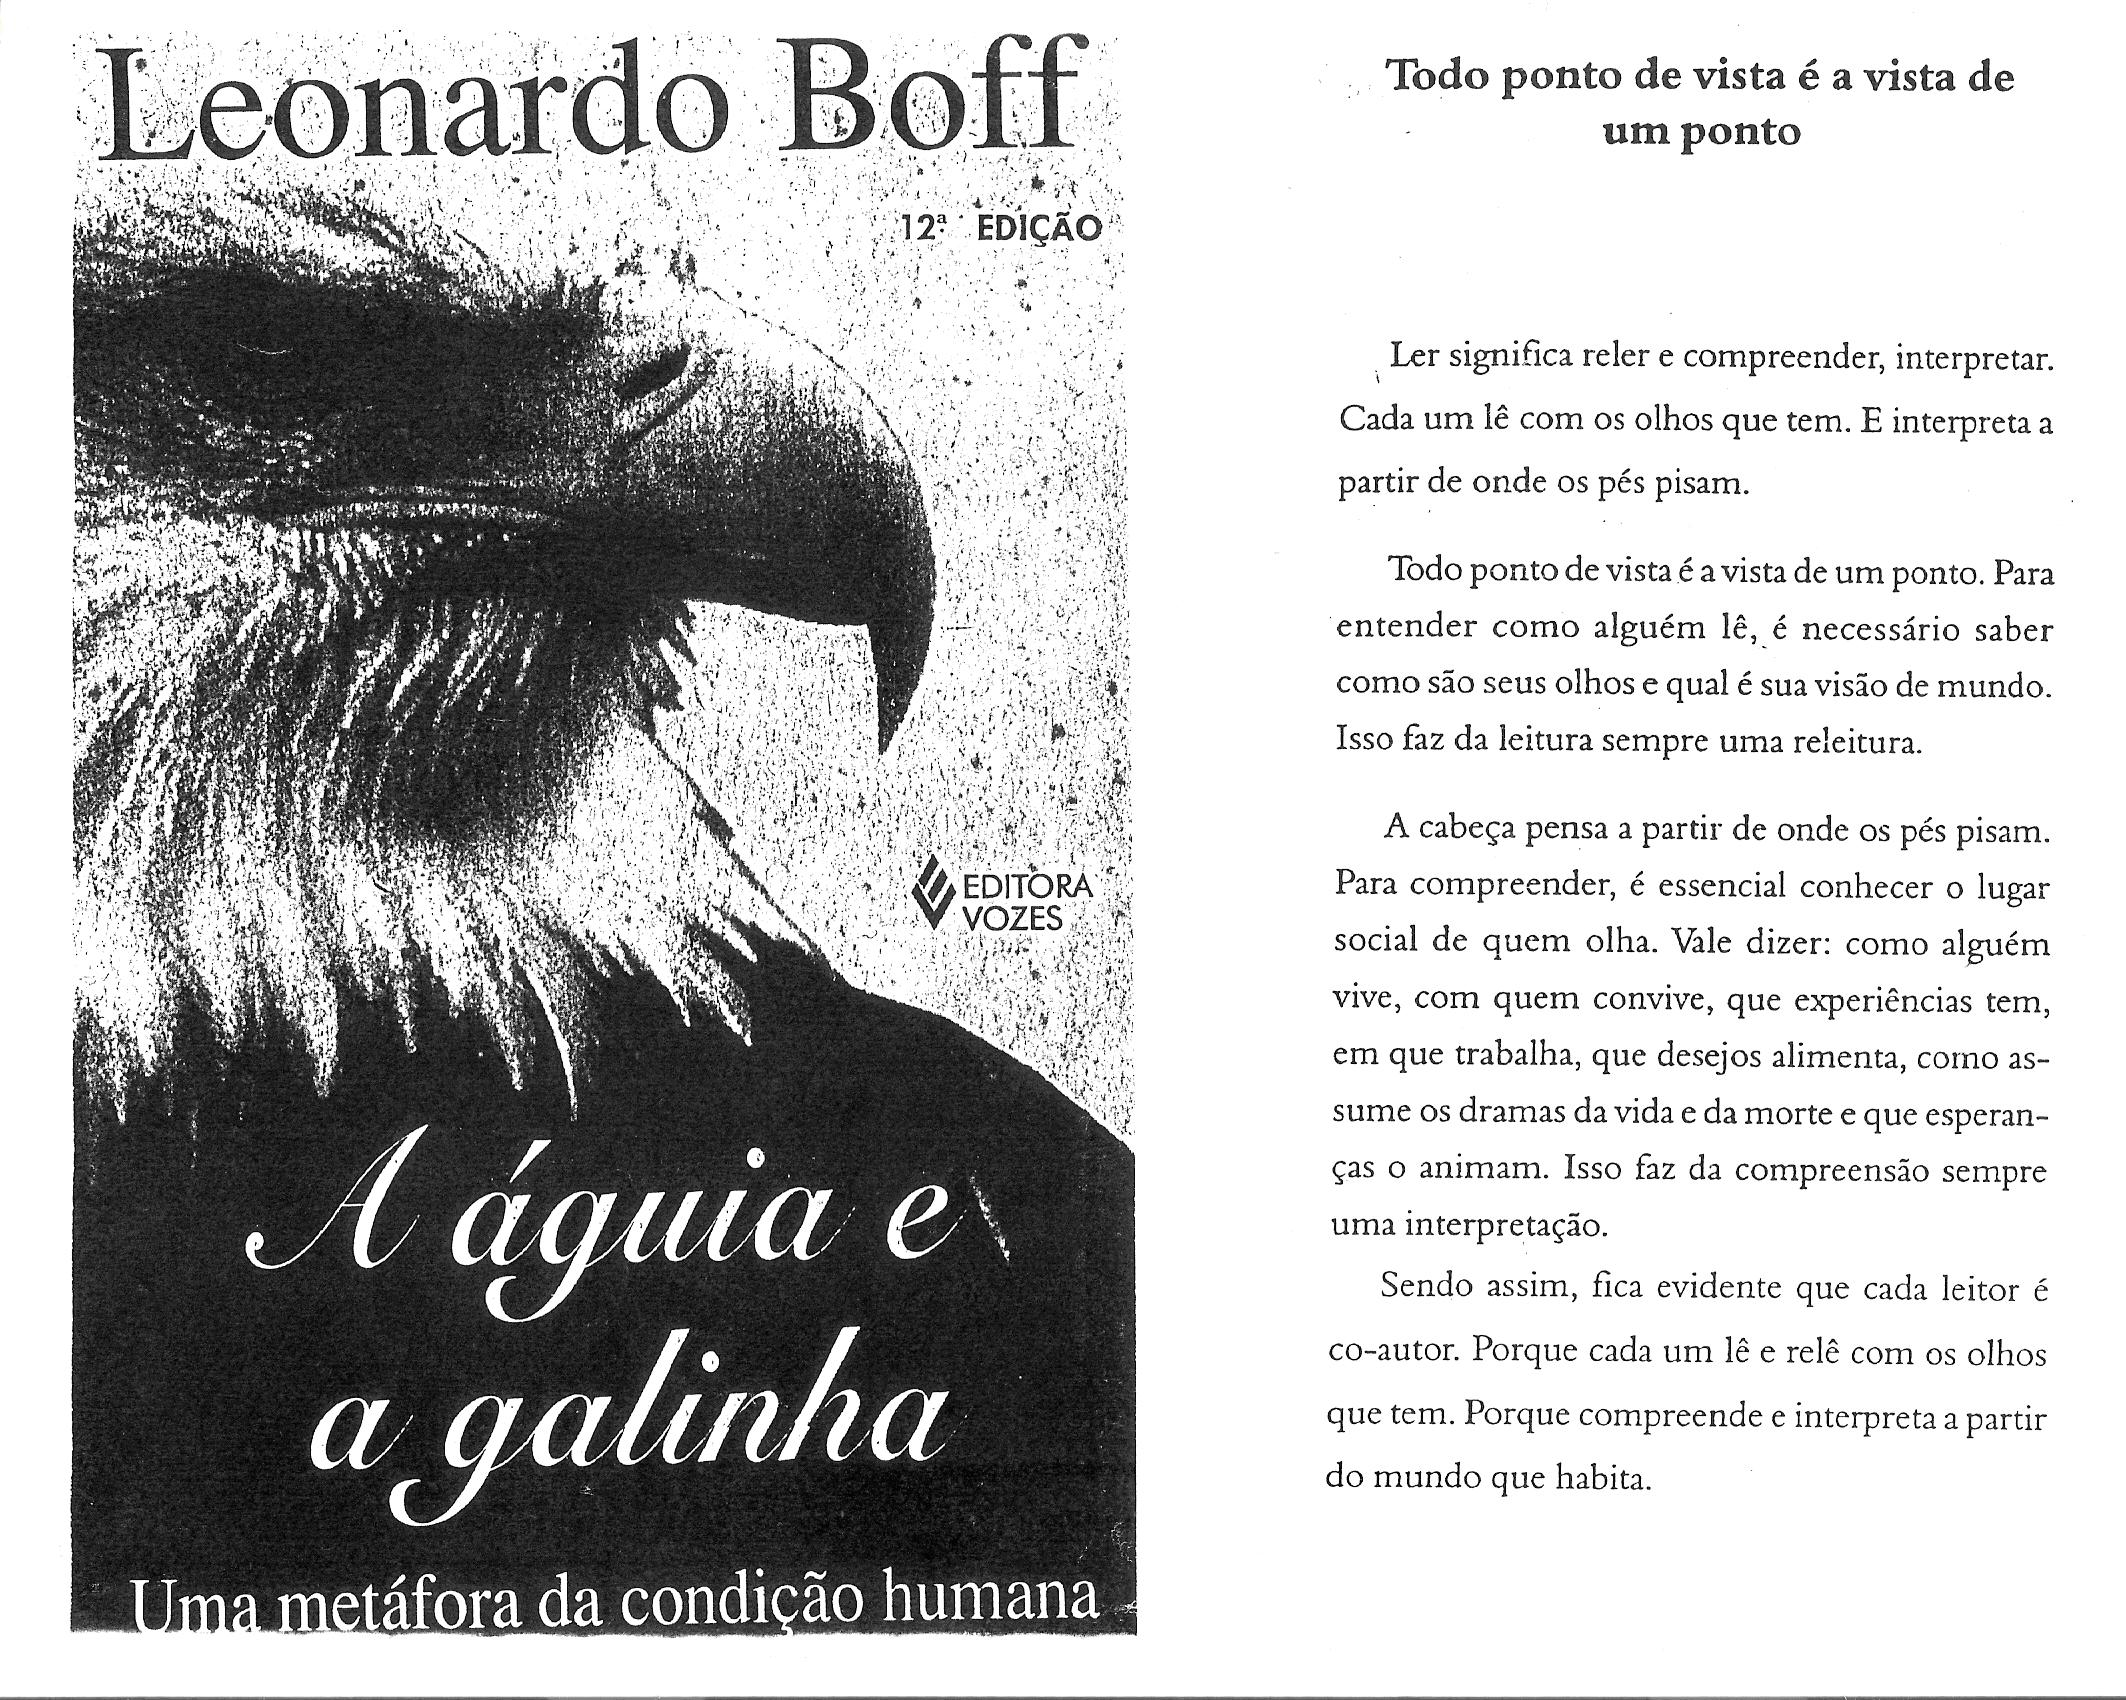 https://walkiriaroque.files.wordpress.com/2011/03/leonardo-boff1.jpg